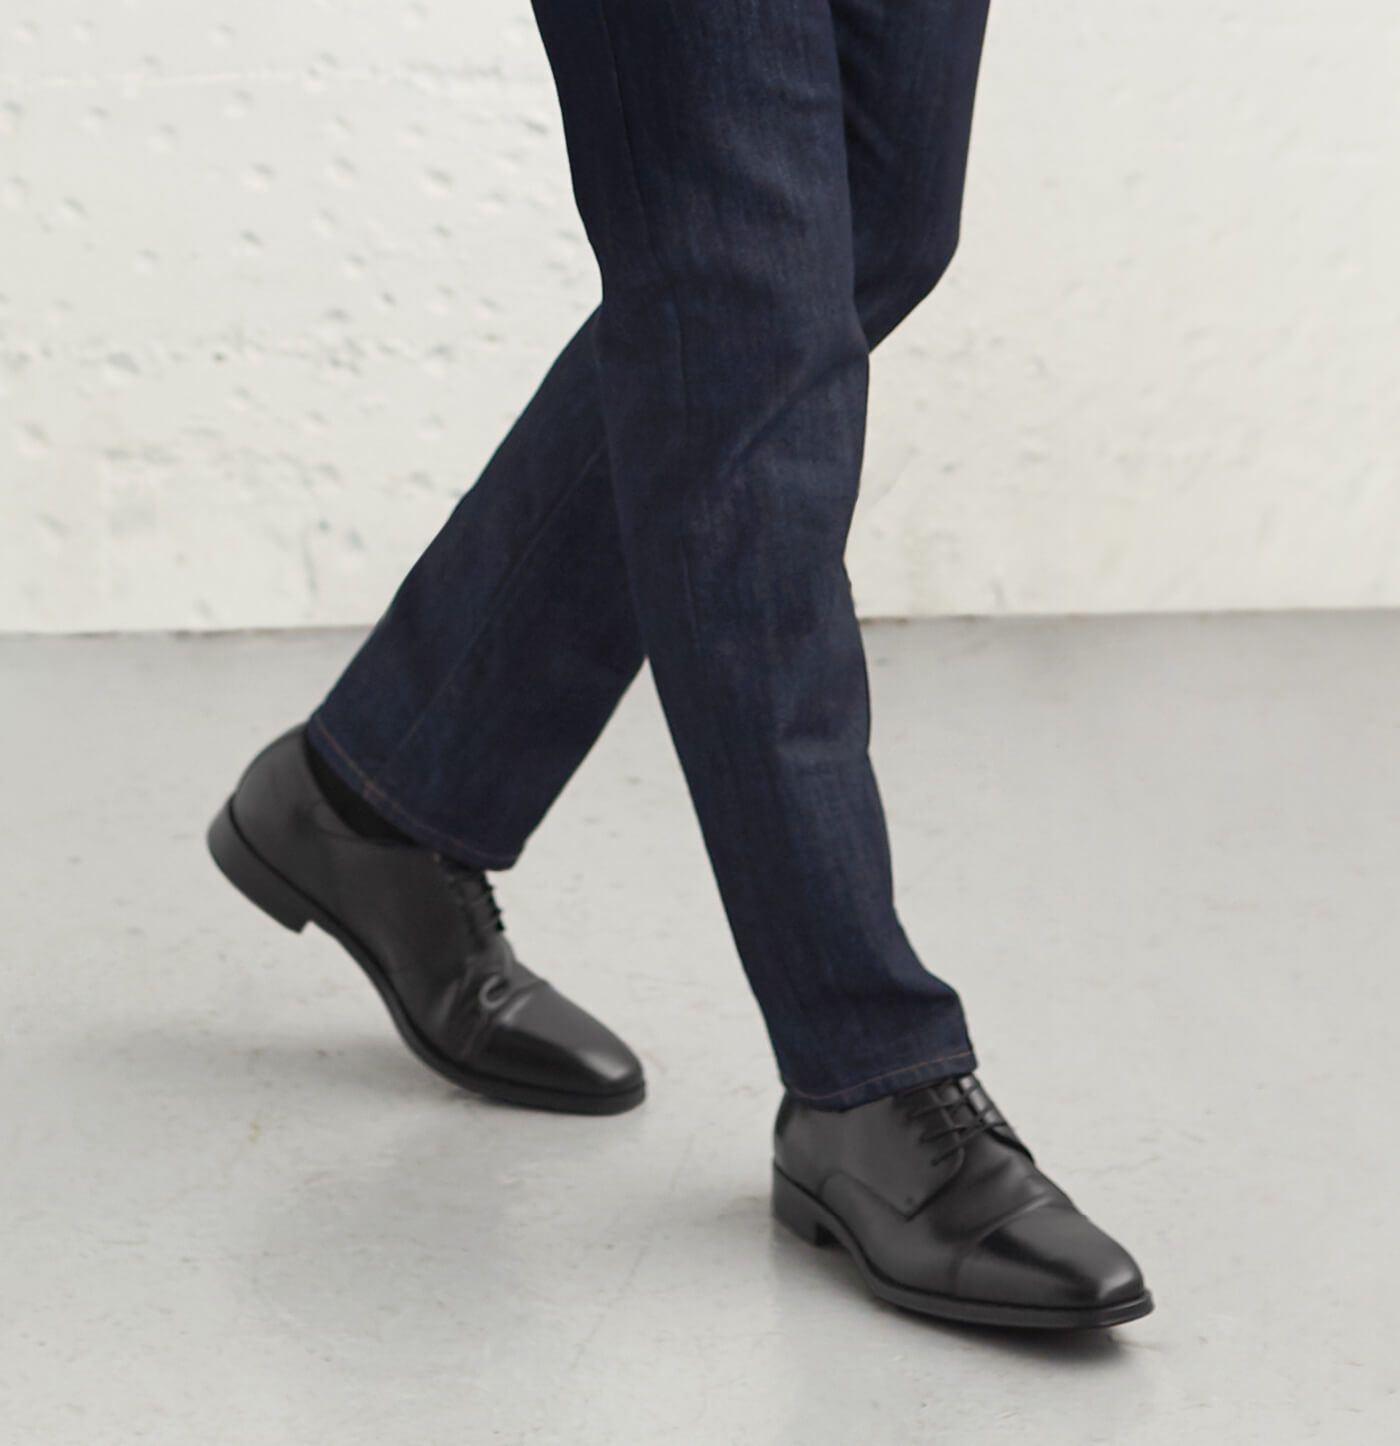 The Right Way To Pair Jeans With Shoes Stitch Fix Men Dress Shoes With Jeans Black Casual Dress Shoes Casual Dress Shoes [ 1446 x 1400 Pixel ]